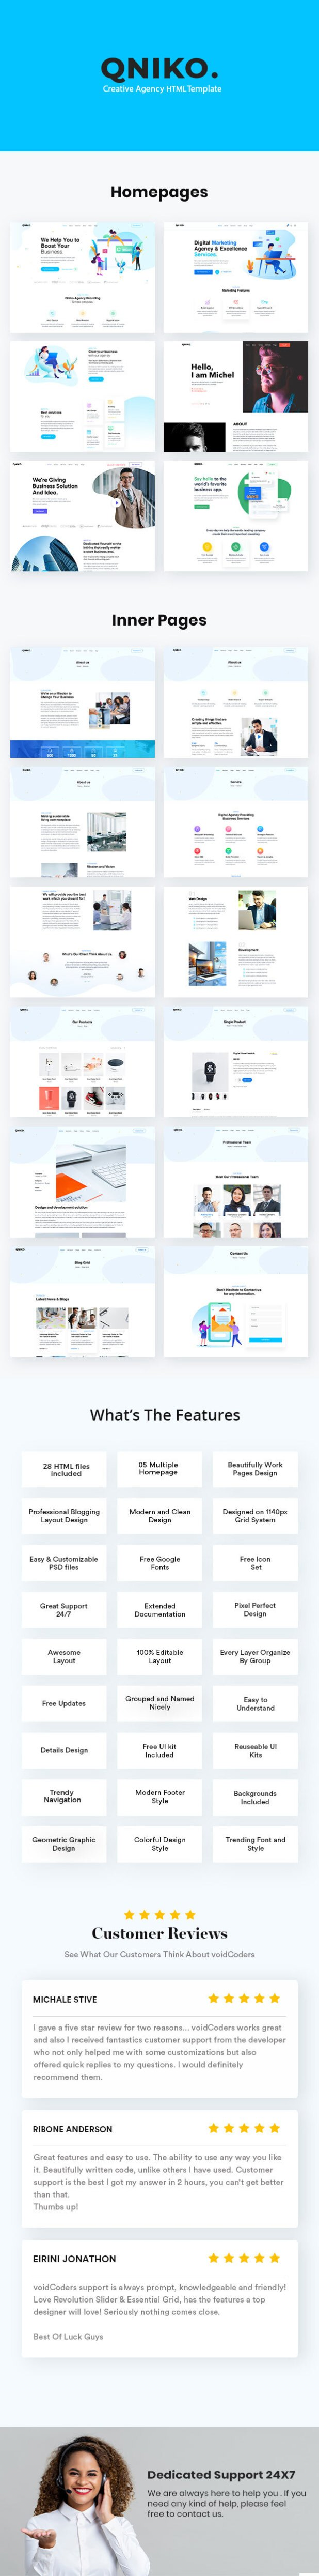 Qniko - Startup Agency HTML5 Template With RTL Support - 1